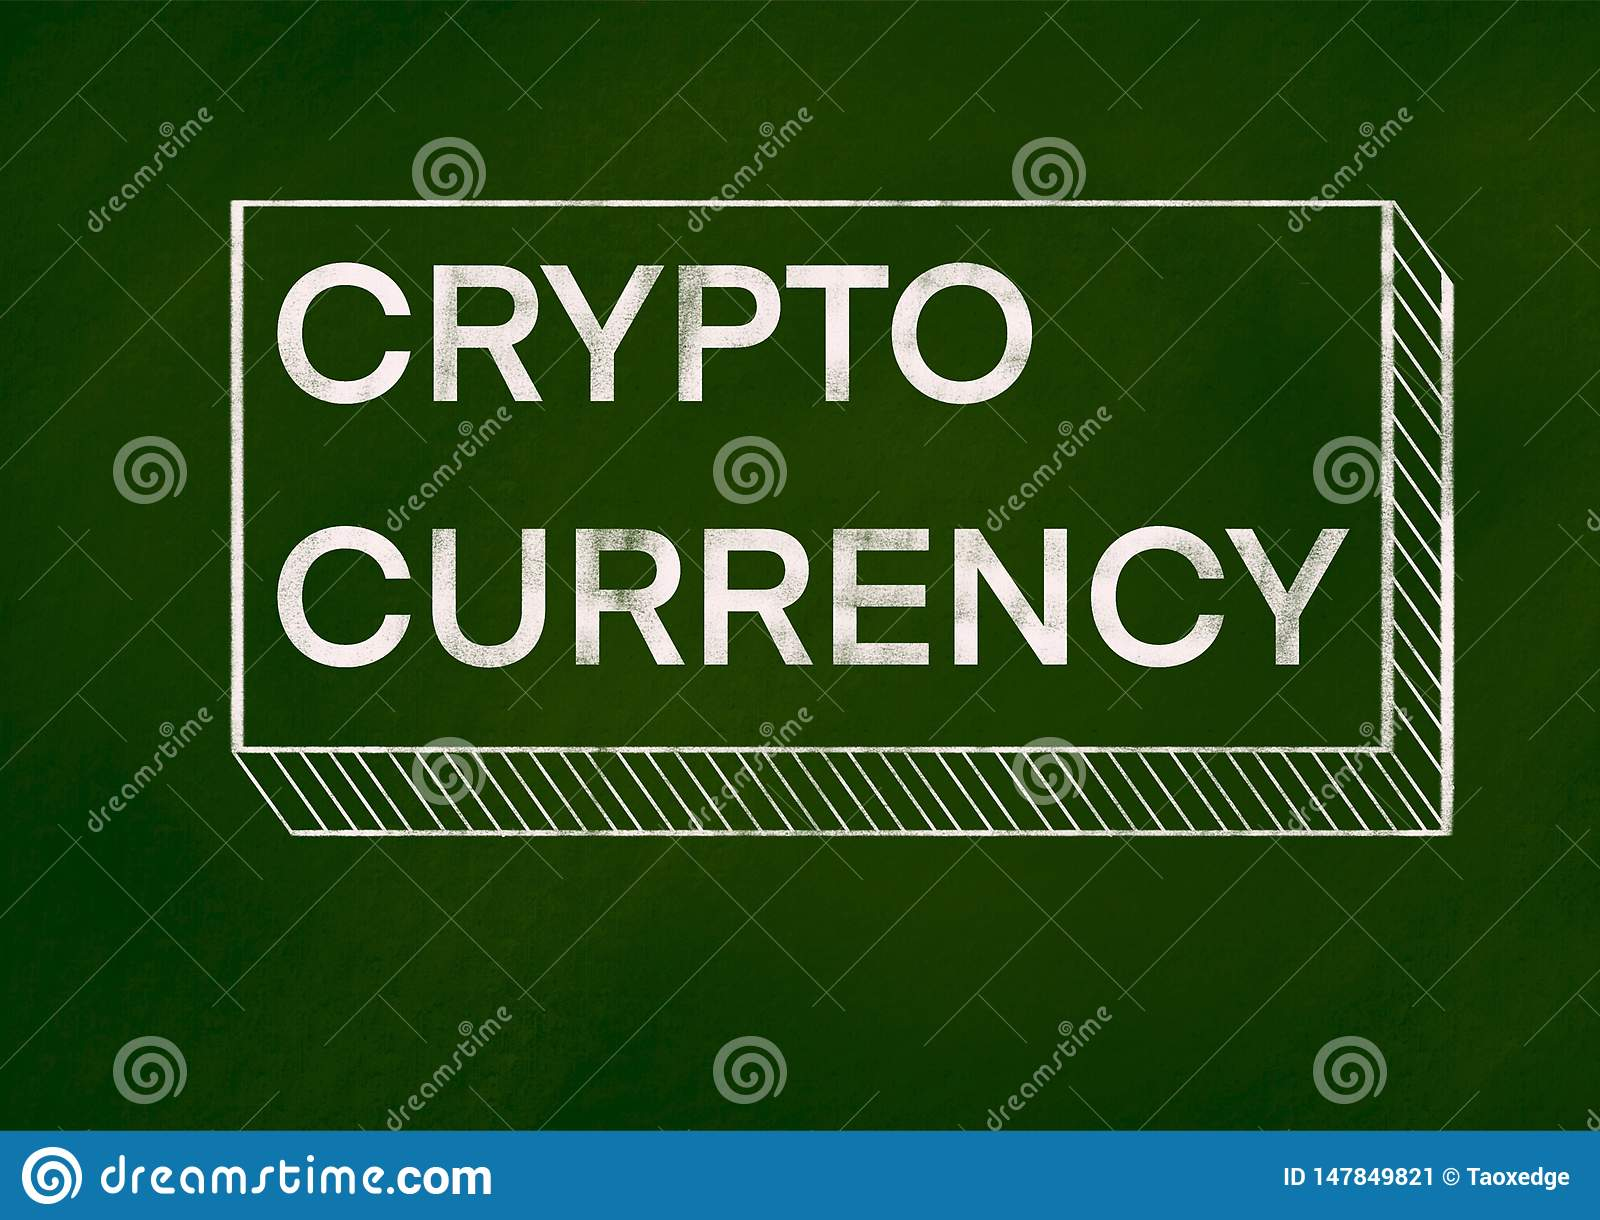 Crypto currency background concept